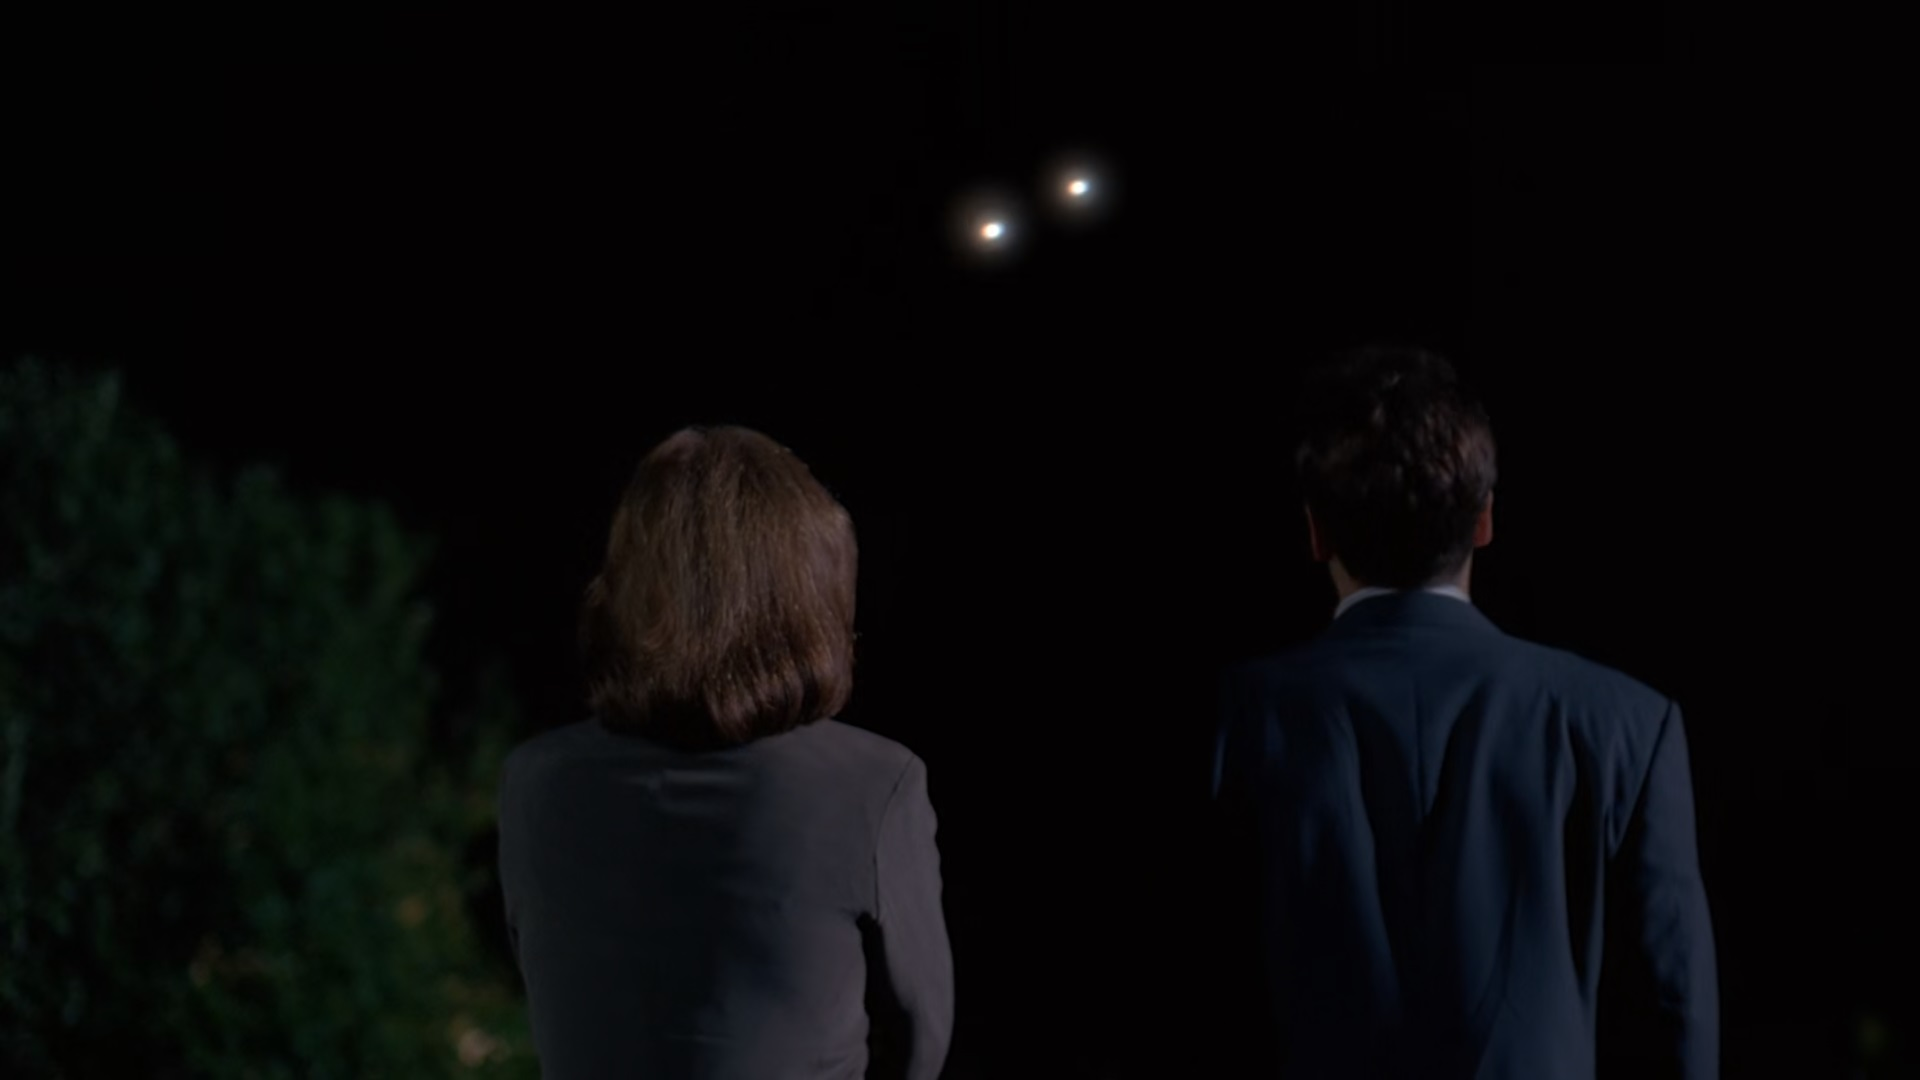 Deep throat - mulder - scully - x-files